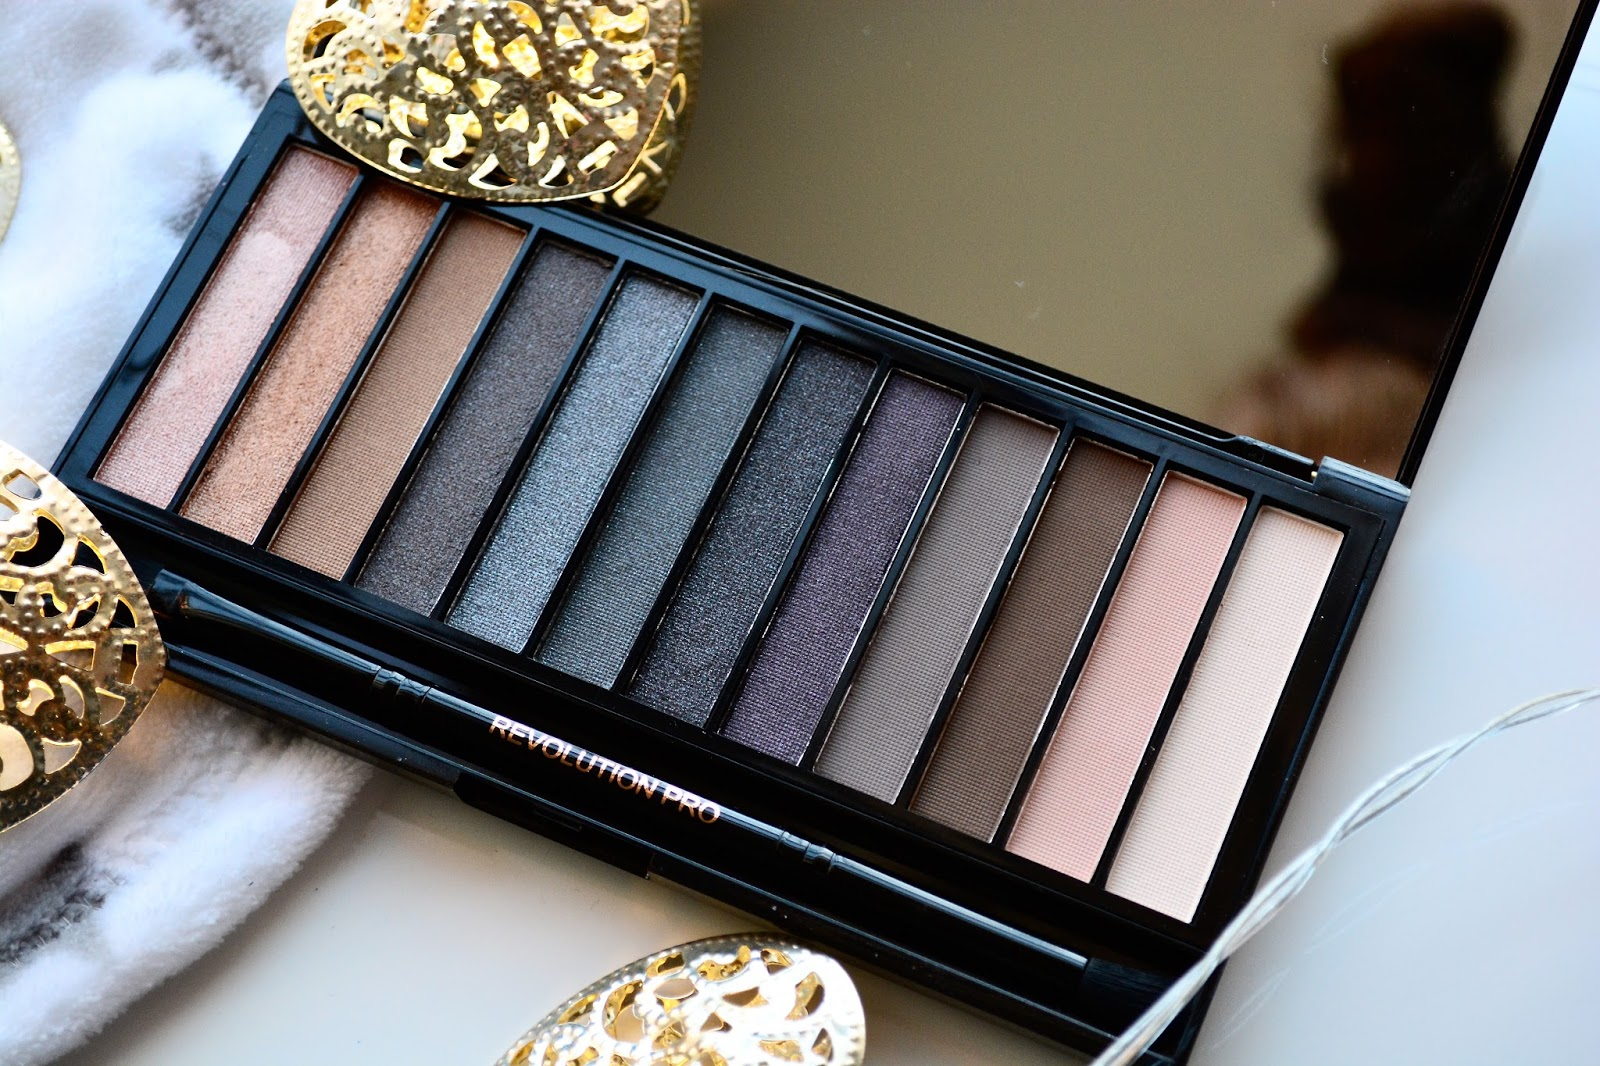 Makeup Revolution Iconic Smokey Palette, Eyeshadows, Smokey Eye, Palette, Christmas, Blogmas